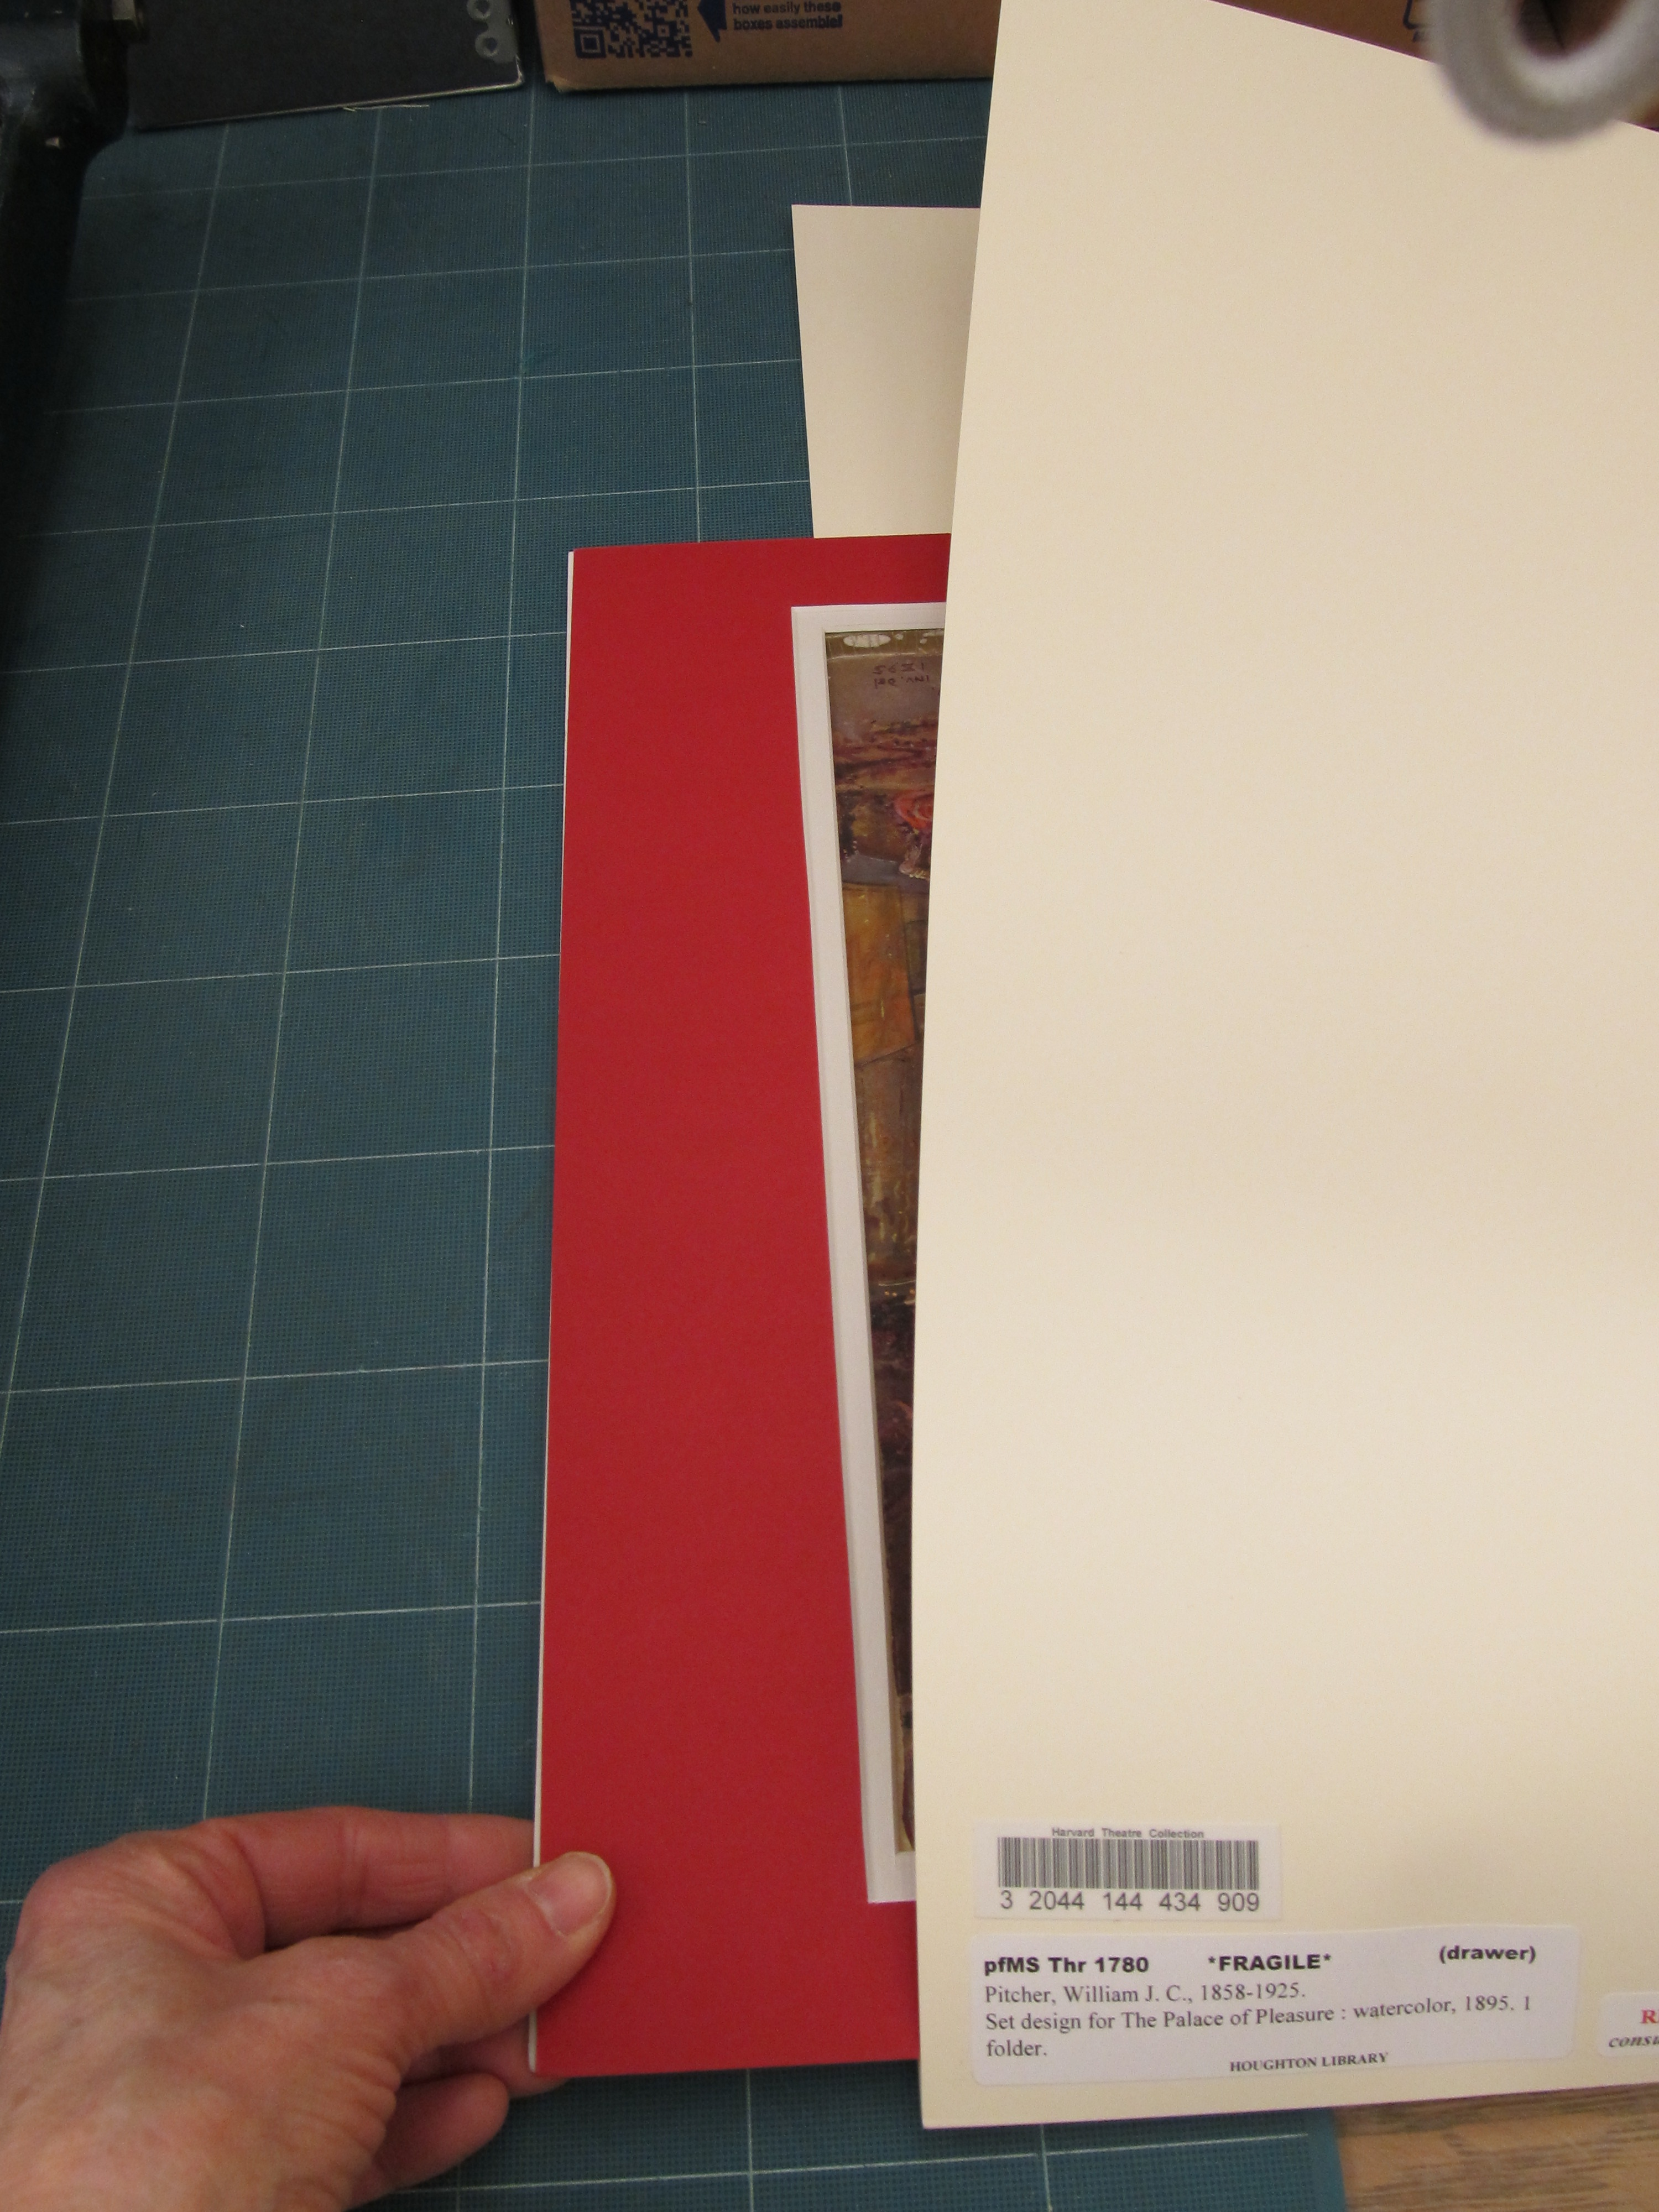 Manuscript End Processing Manual Houghton Technical Services How To Make An Easy Origami Sword Page 7 Apps Directories Inside A Half Drawer Pfd The 20 X 24 Folders Are Oriented Side By With Label Open Facing Front Of As Below Sometimes